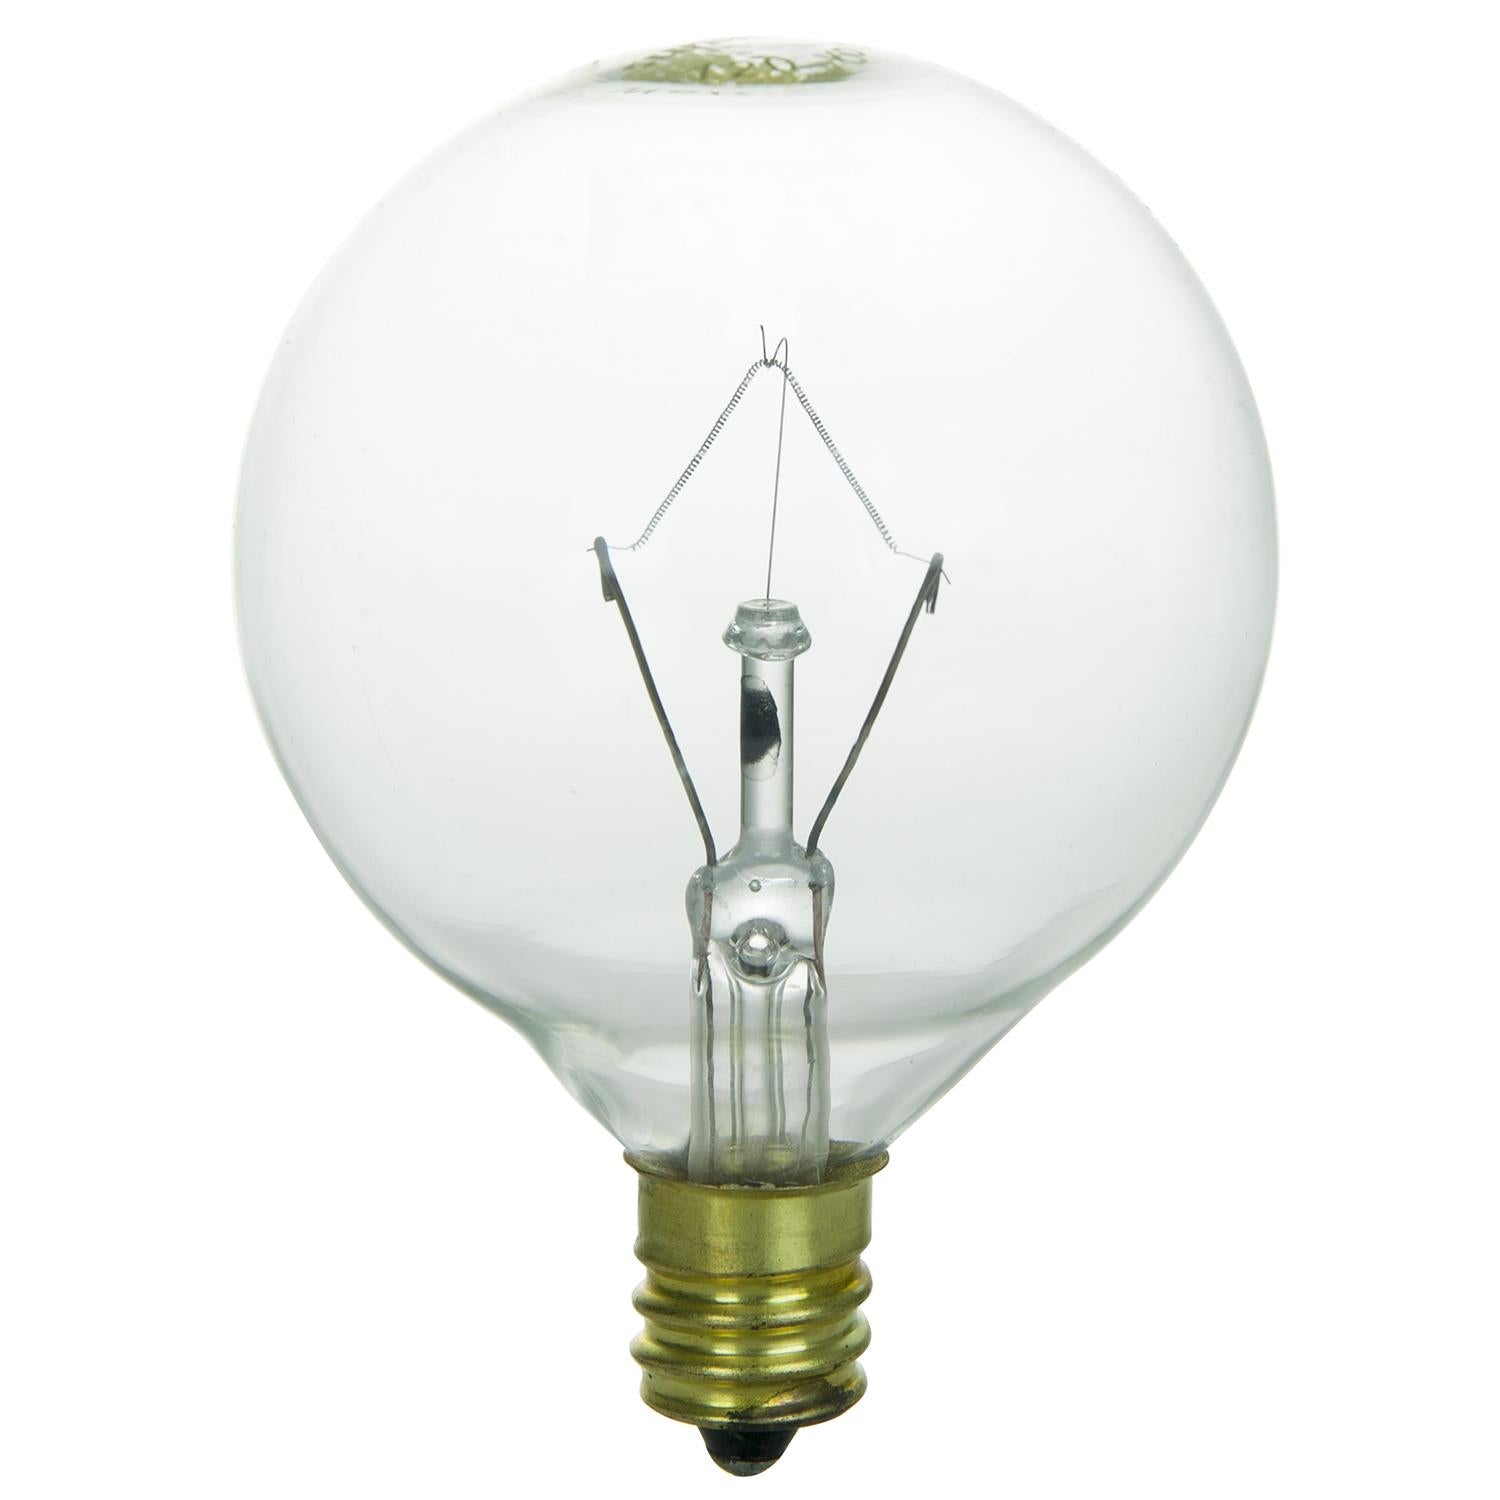 SUNLITE 25W 120V Globe G16.5 Clear E12 Incandescent Light Bulb